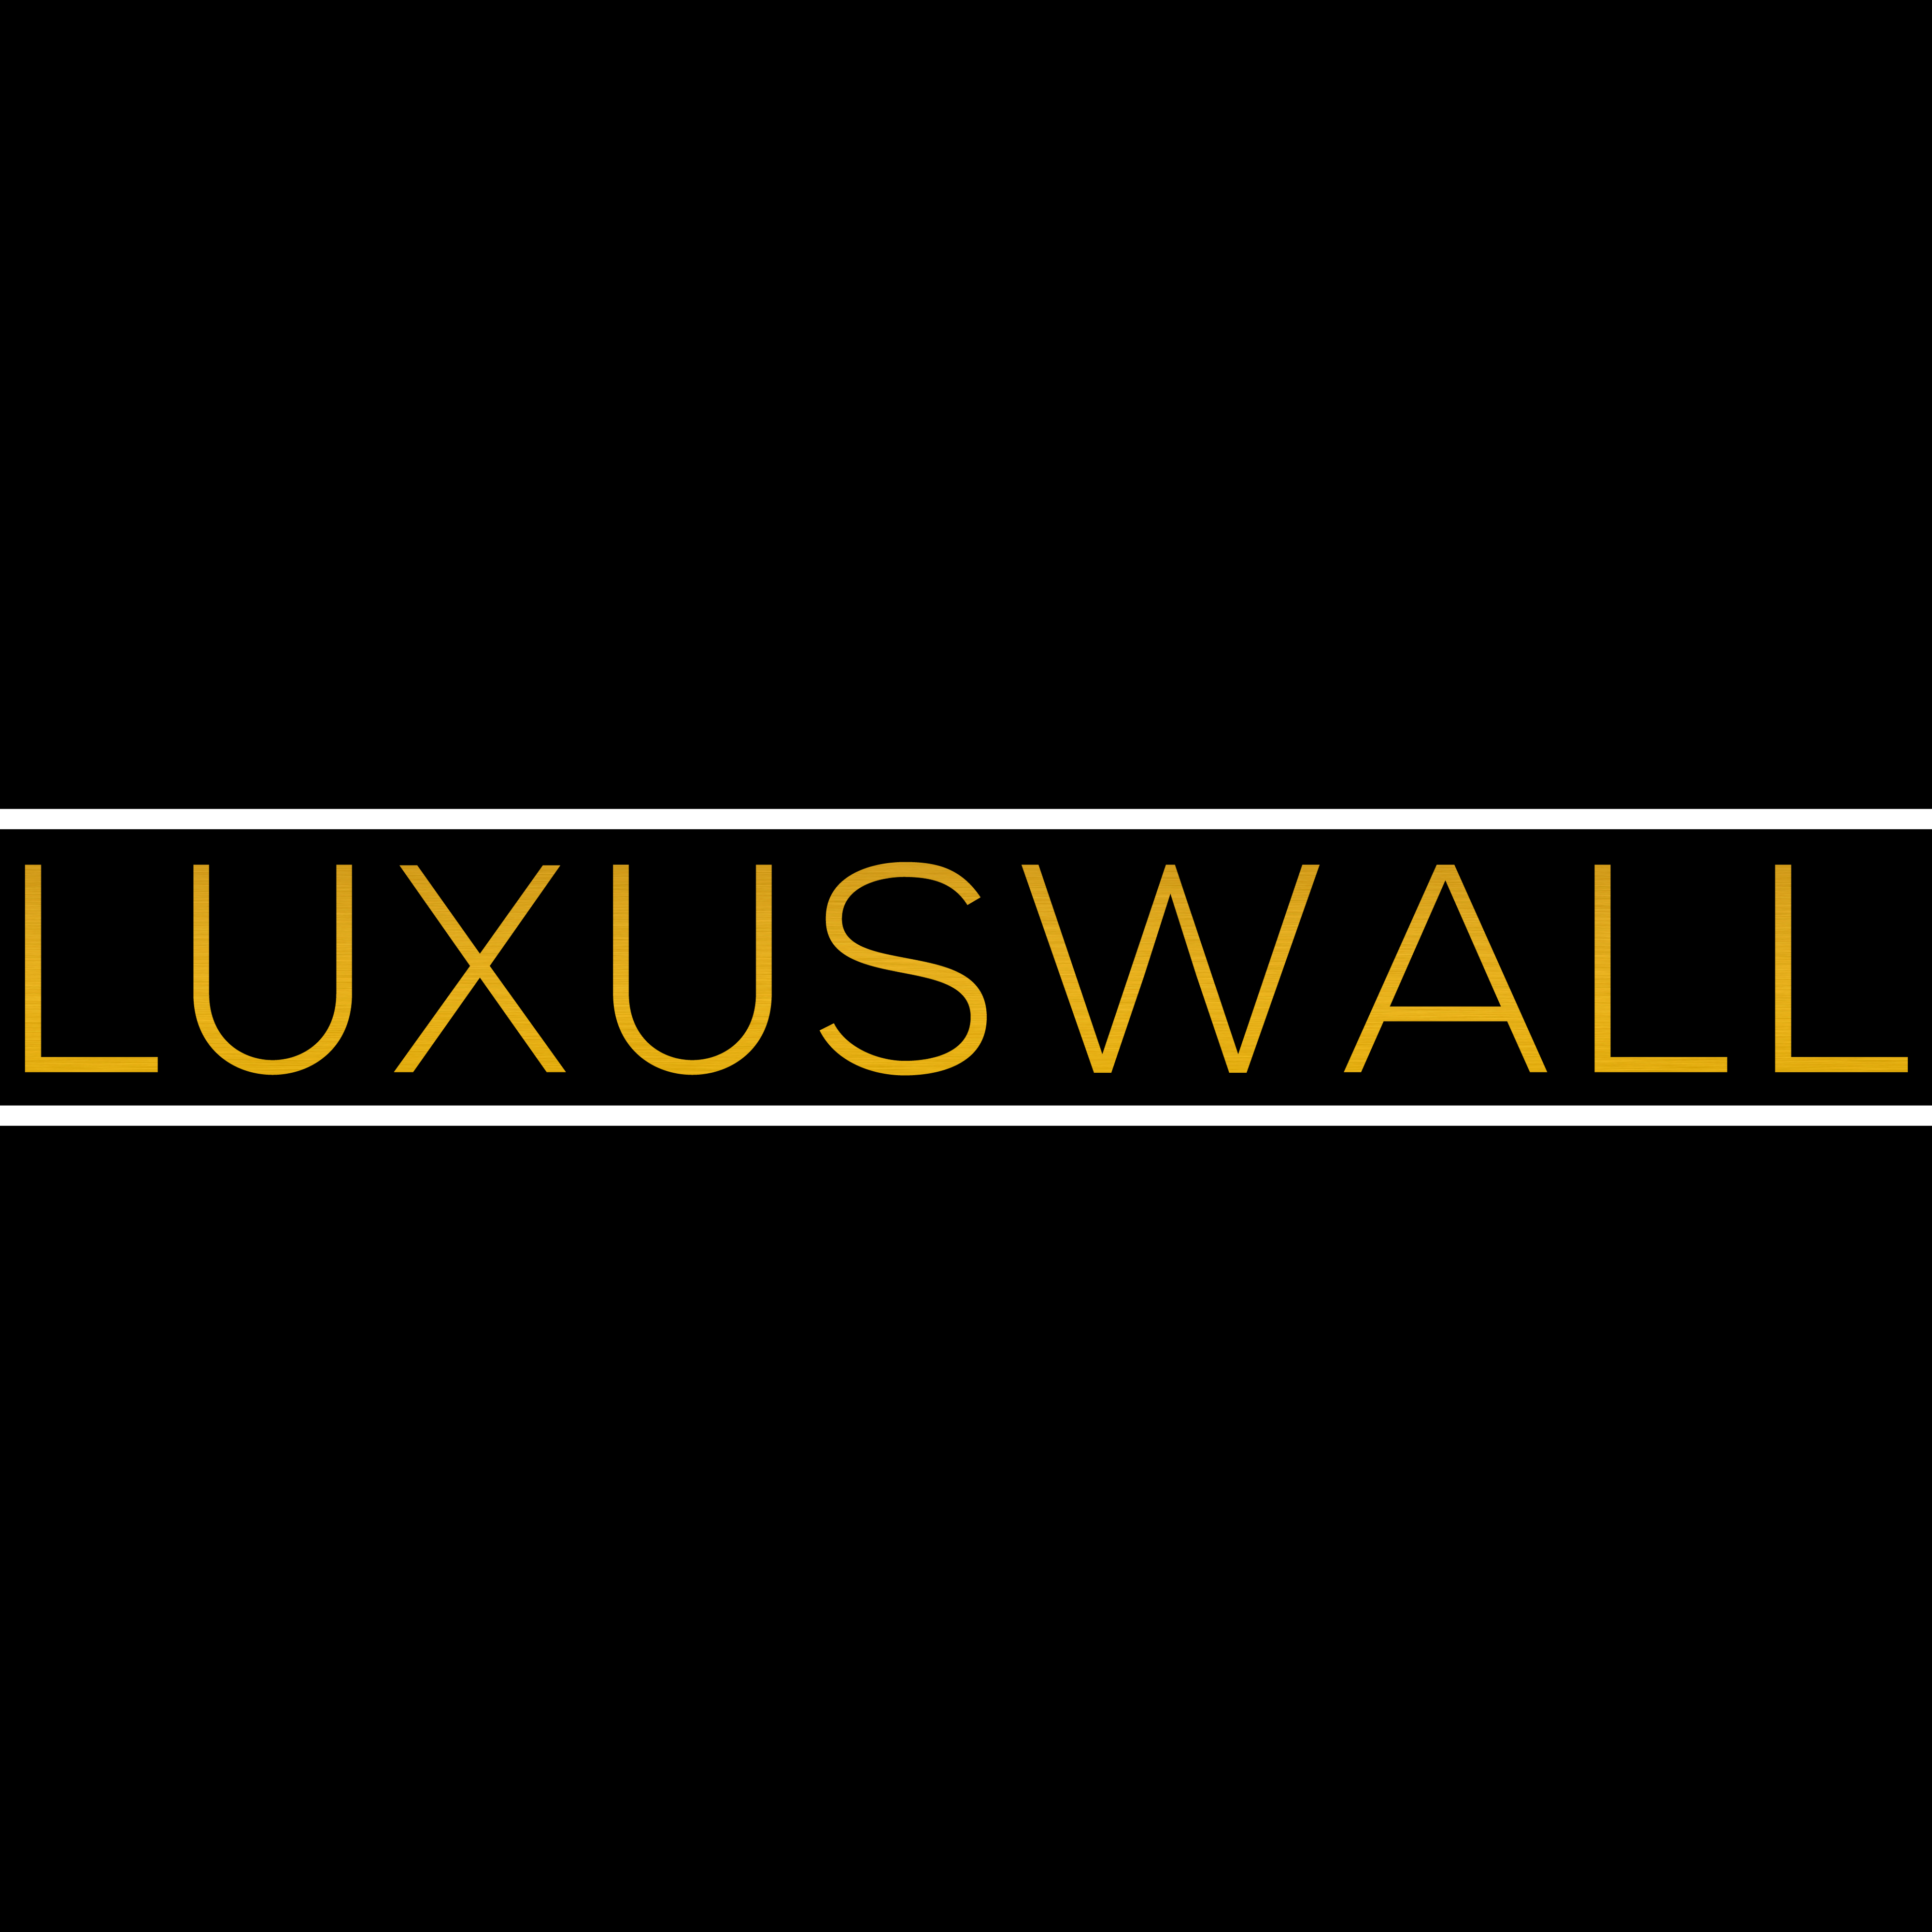 Luxuswall individuelle raumgestaltung kreative for Kreative raumgestaltung